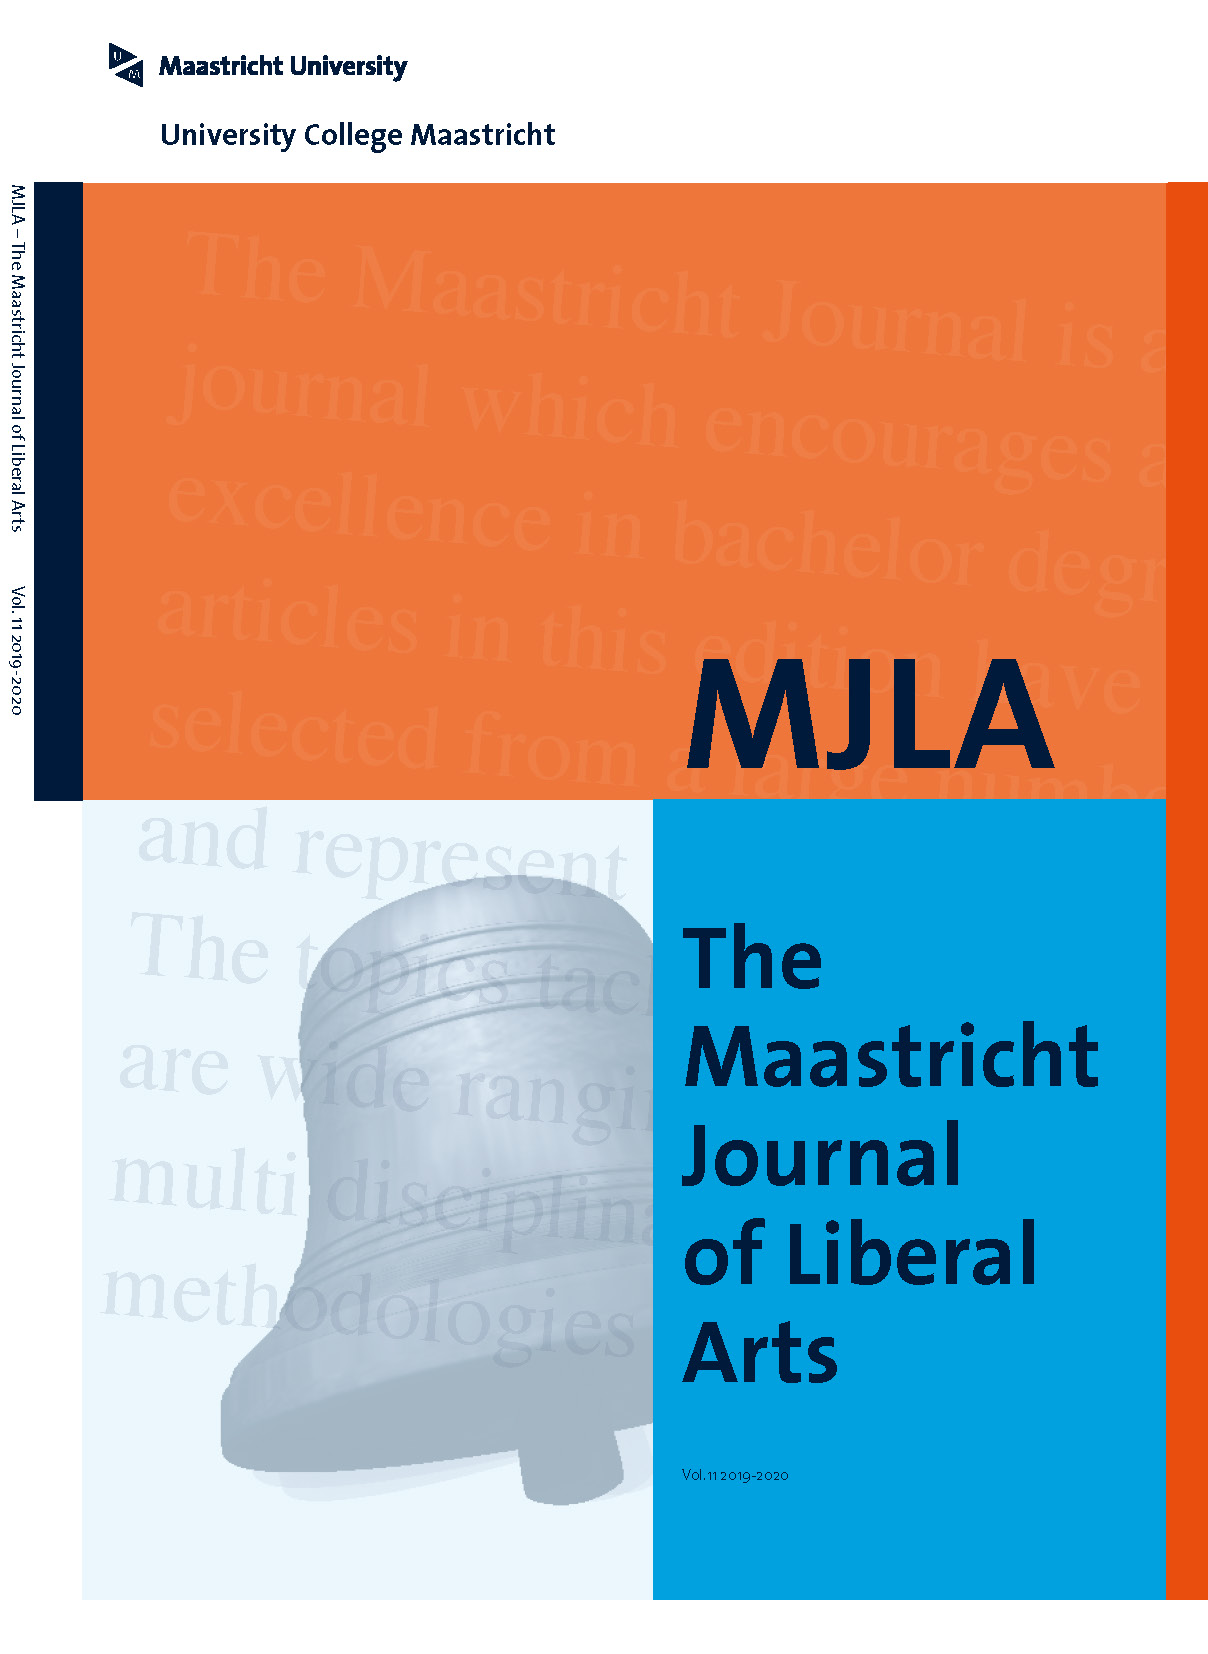 Front cover of the 2019 edition of the Maastricht Journal of Liberal Arts